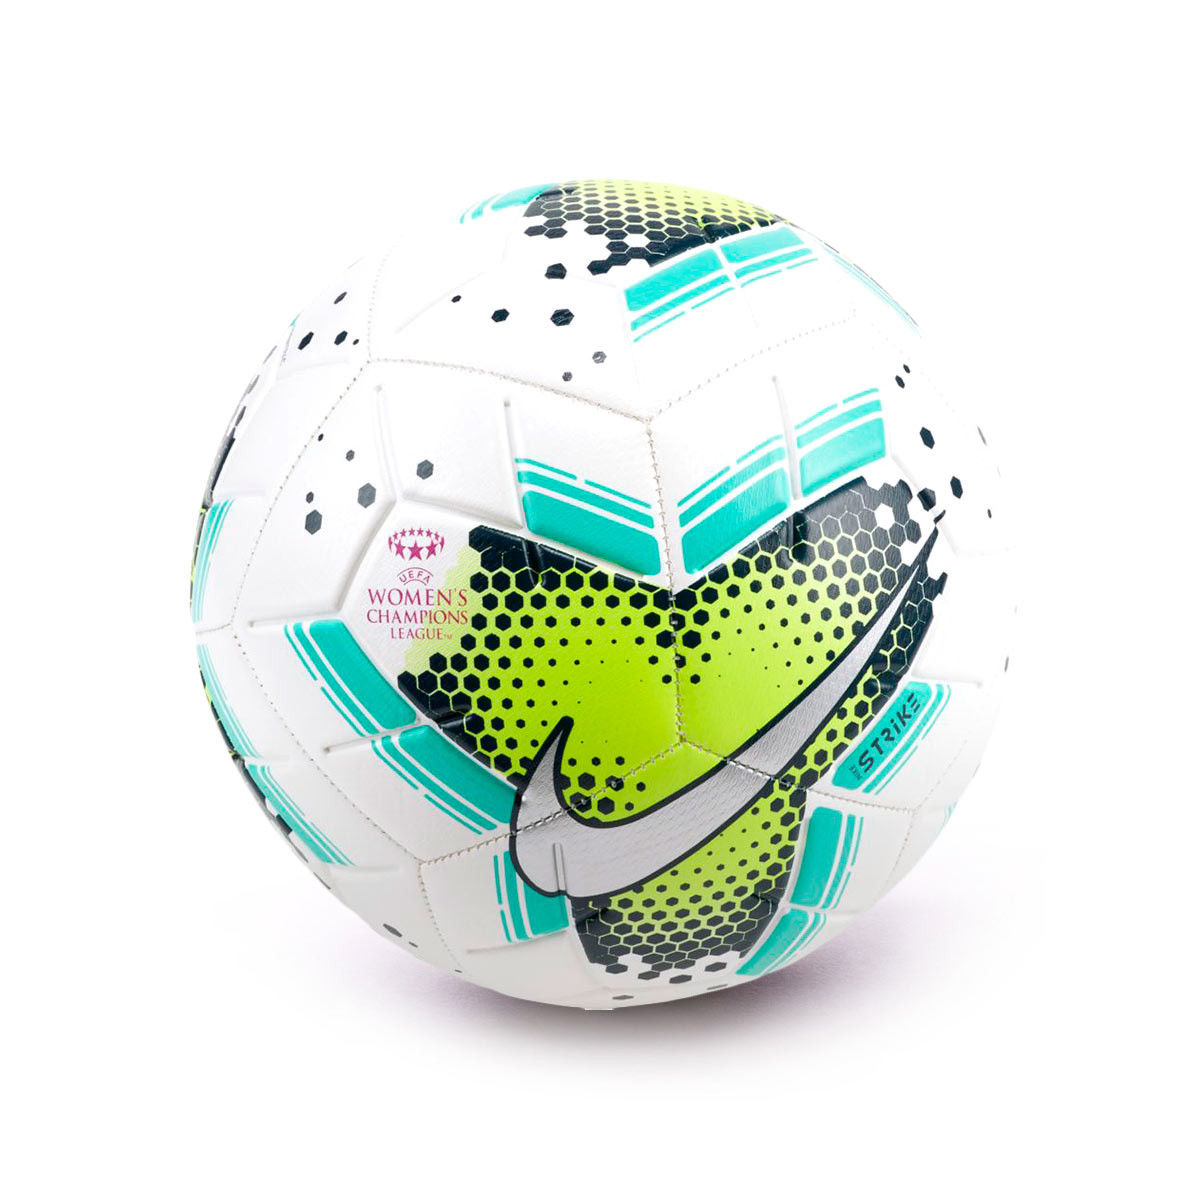 ball nike uefa women s champions league strike 2020 white volt aurora green football store futbol emotion nike uefa women s champions league strike 2020 ball